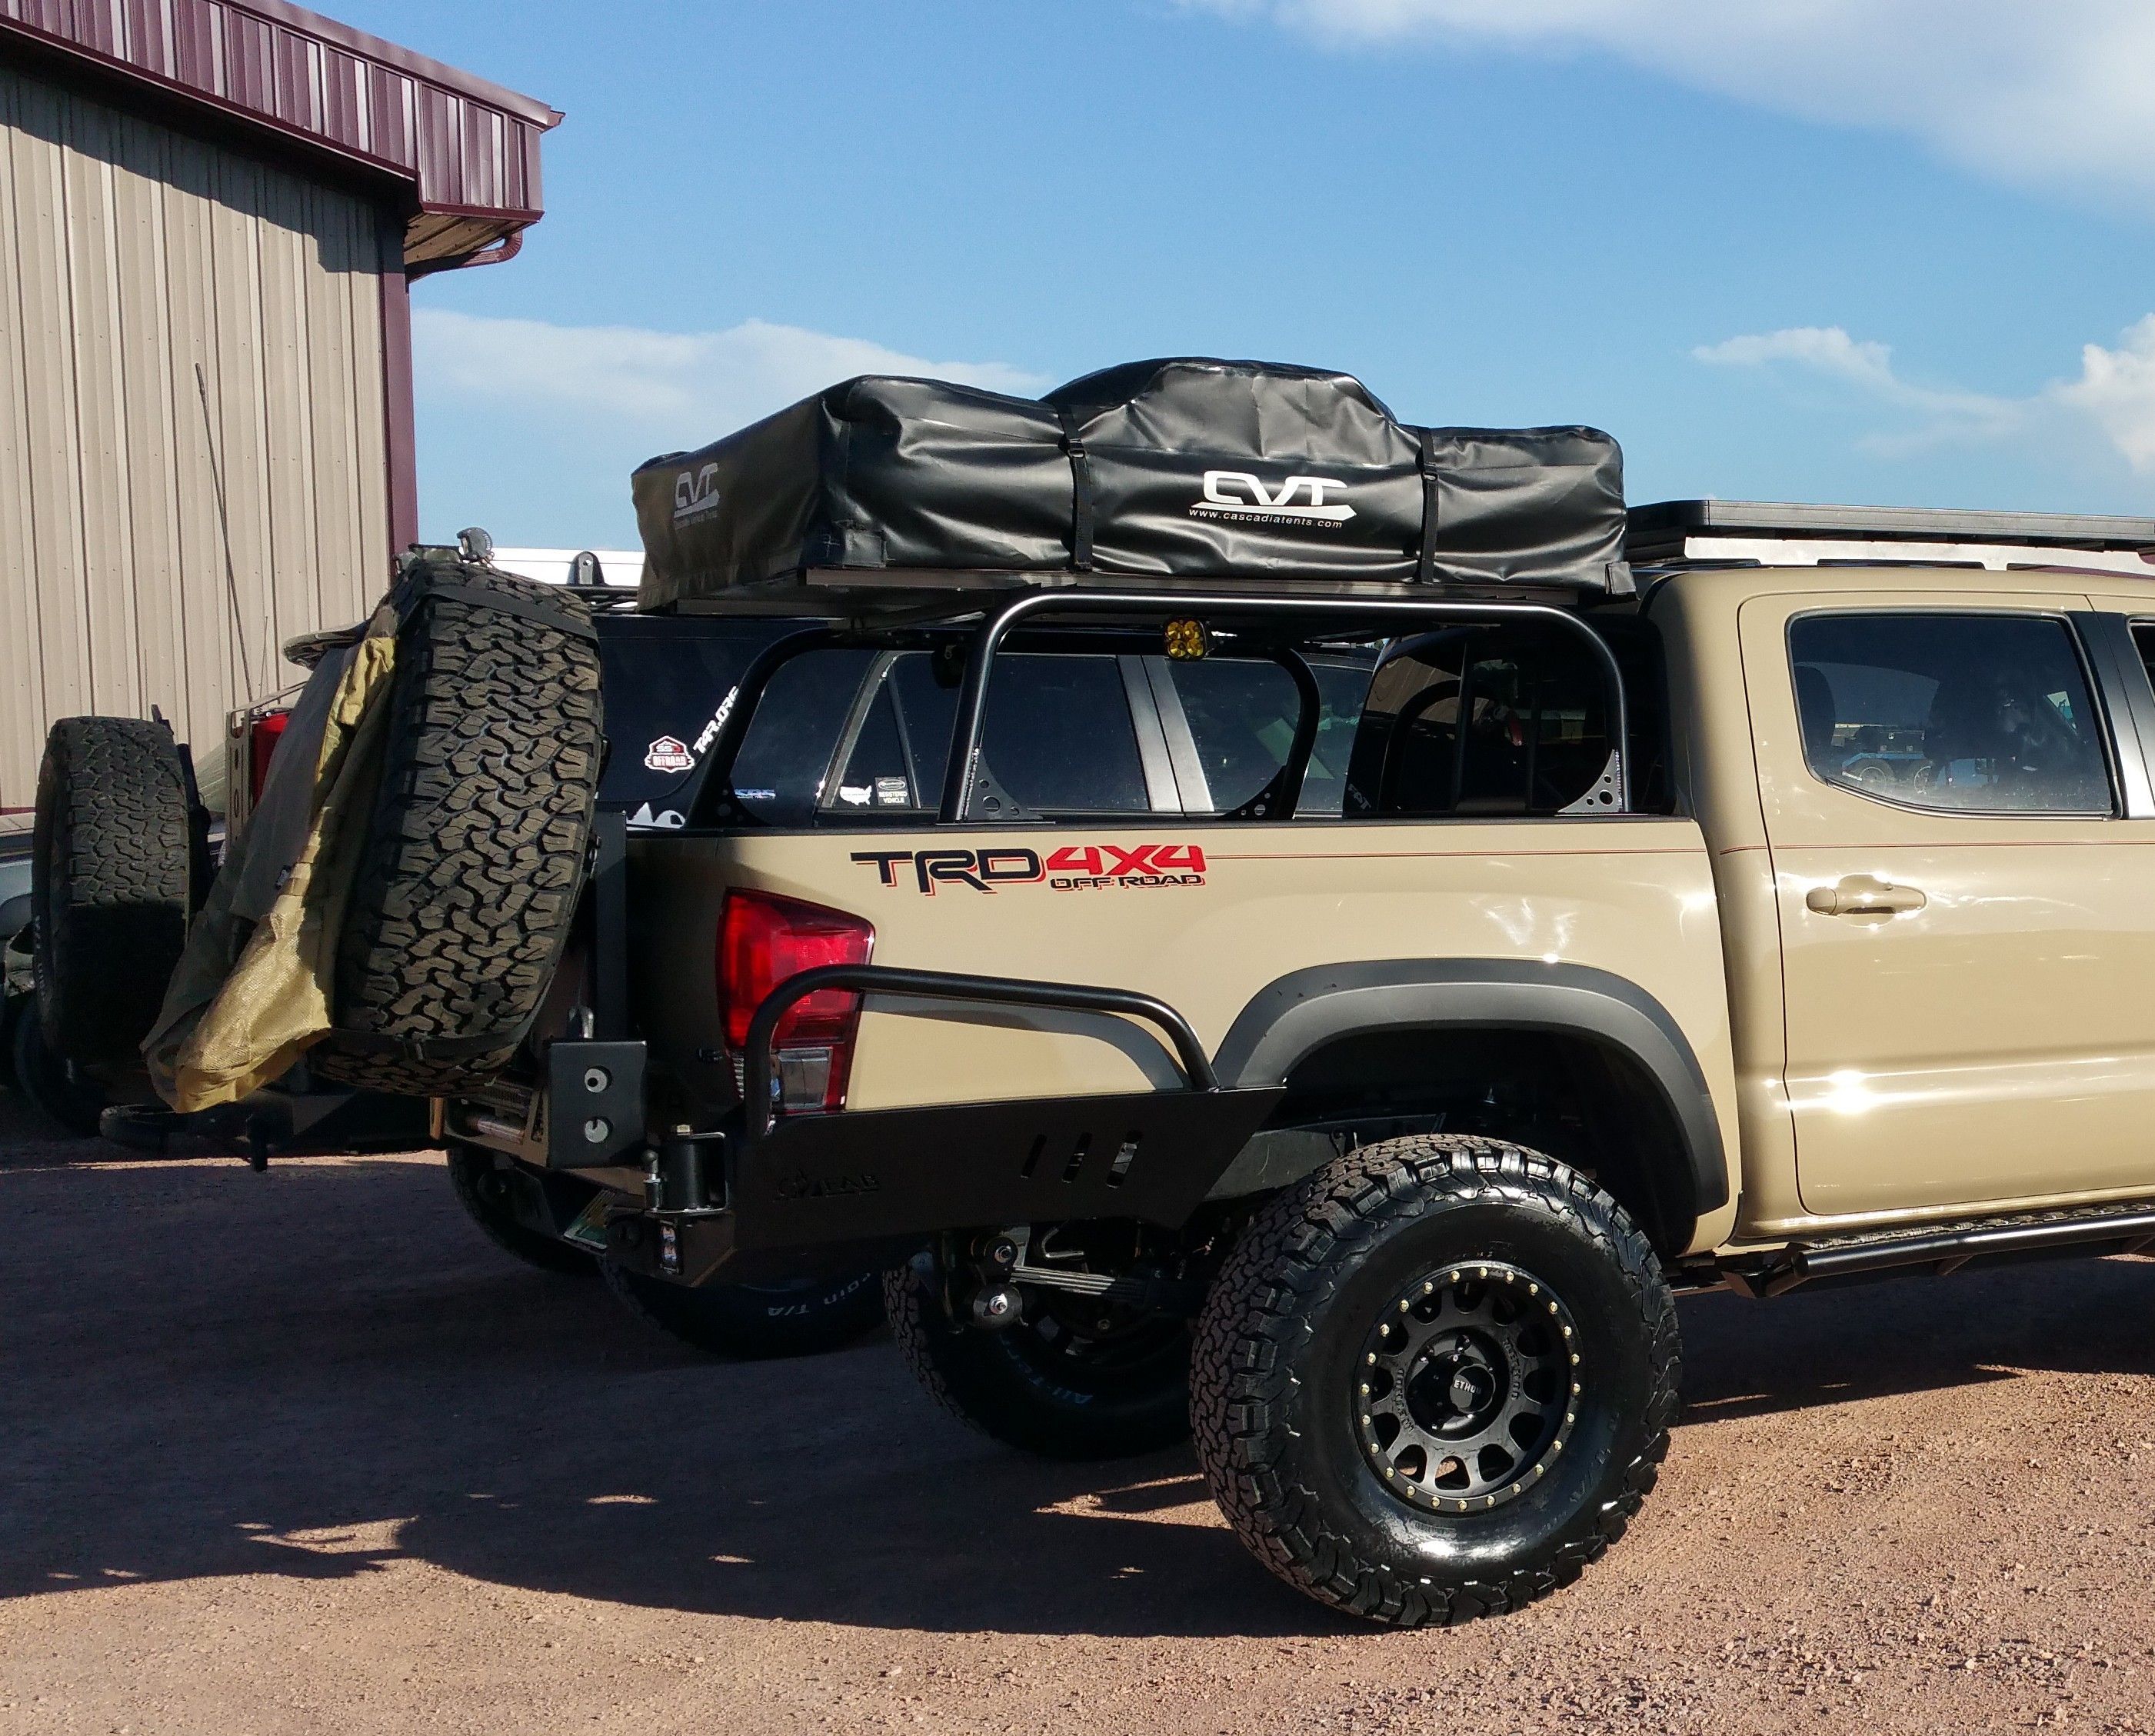 2016 Tacoma 3rd Gen Excursion Bed Rack C4 Fabrication